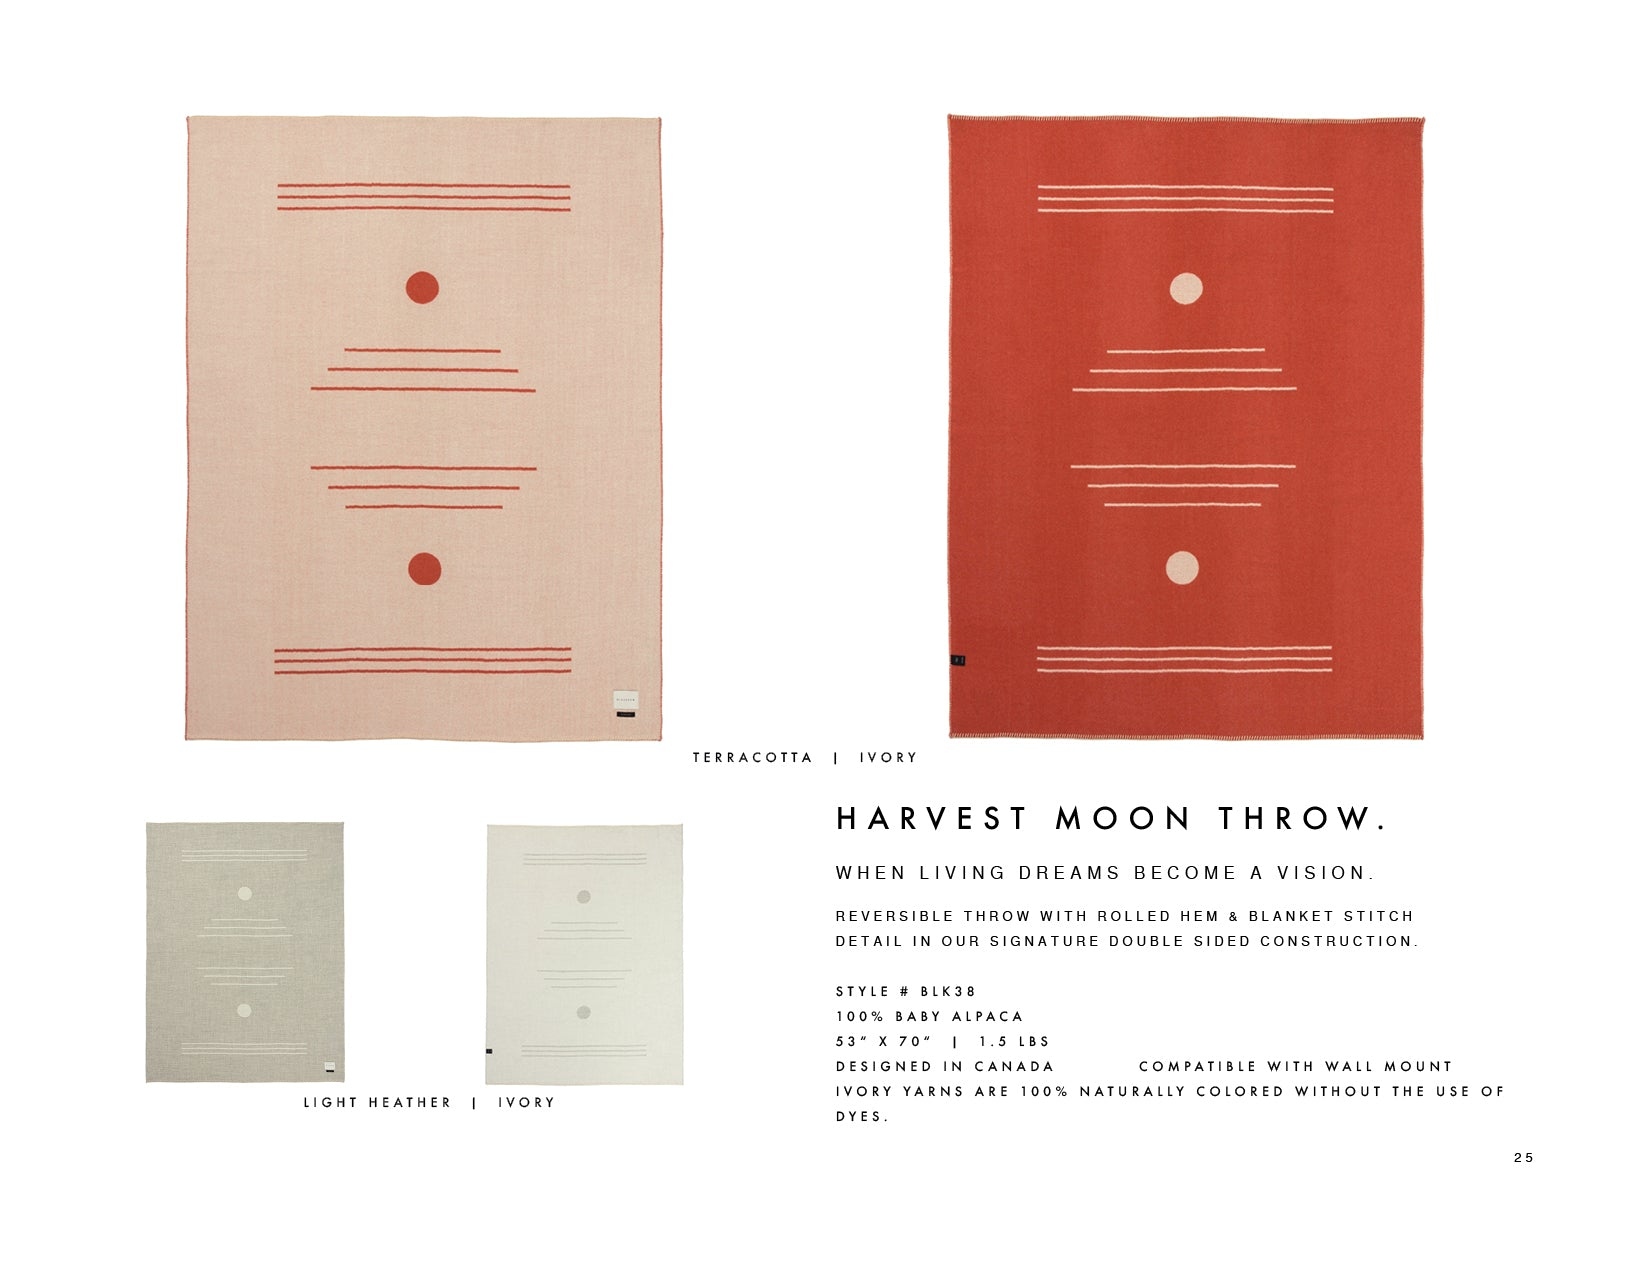 Blacksaw Harvest Moon Light heather/Ivory and Terracotta/ Ivory